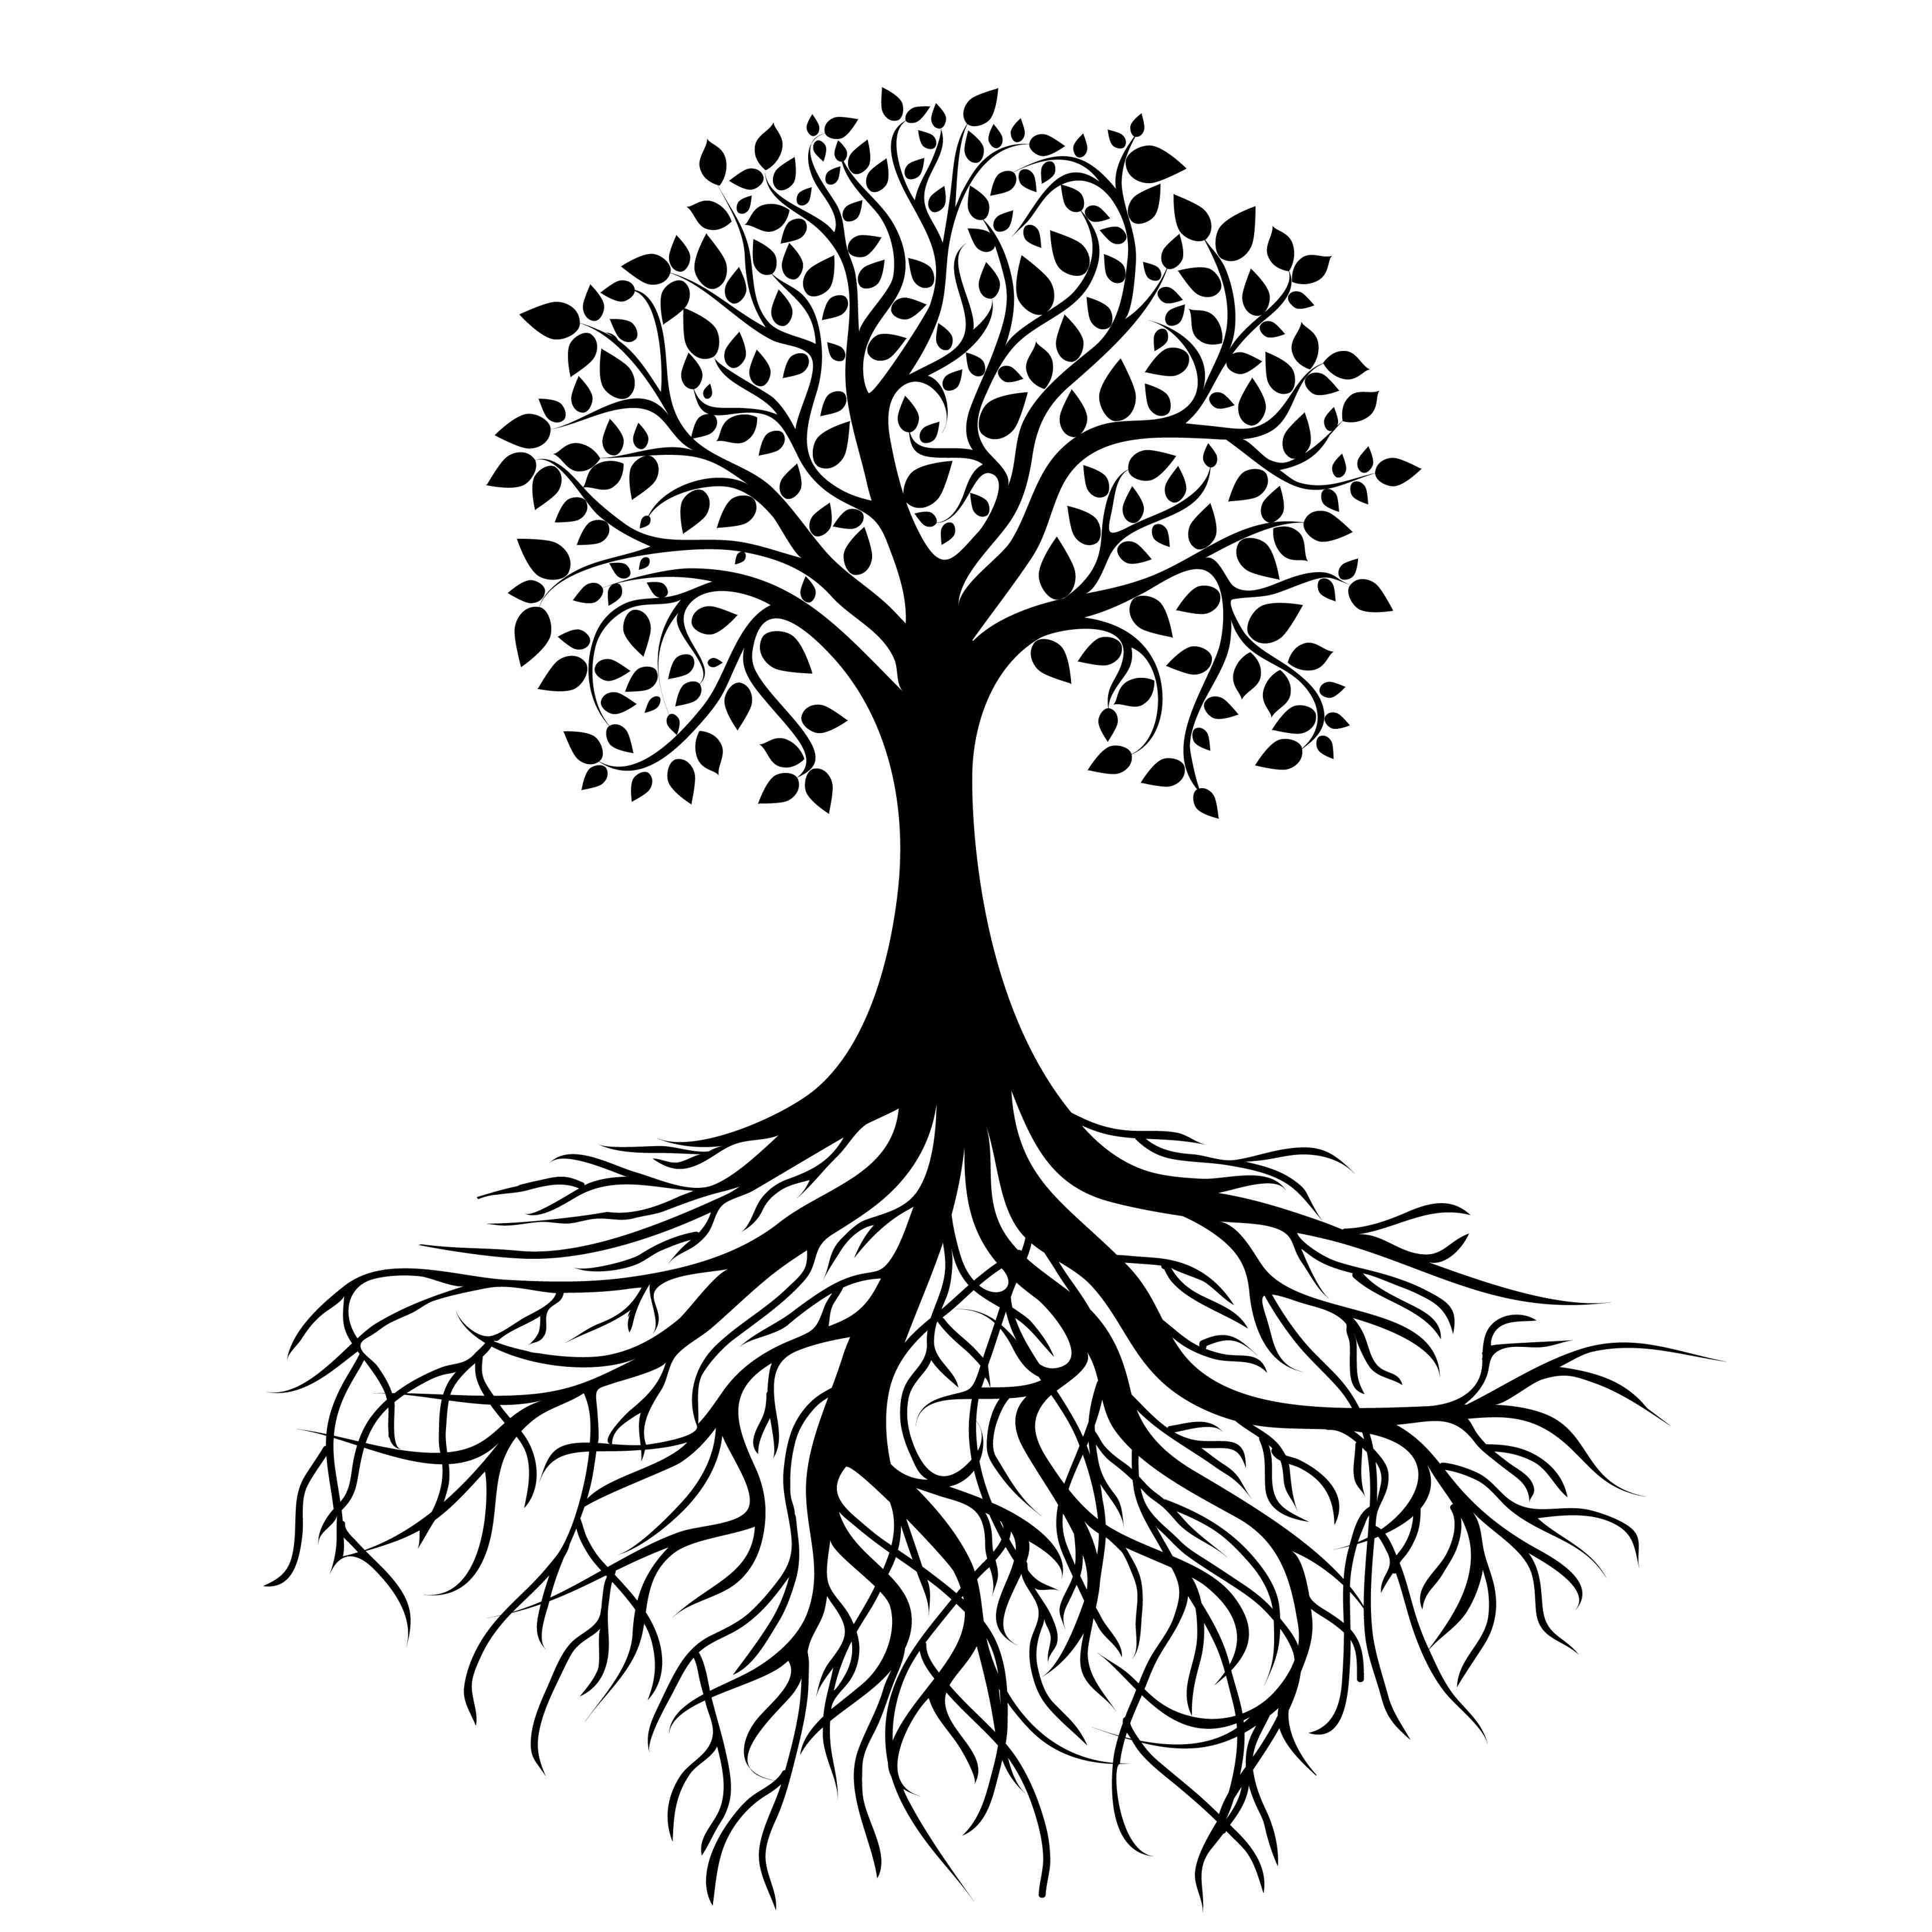 Roots clipart rooted tree. Image result for black